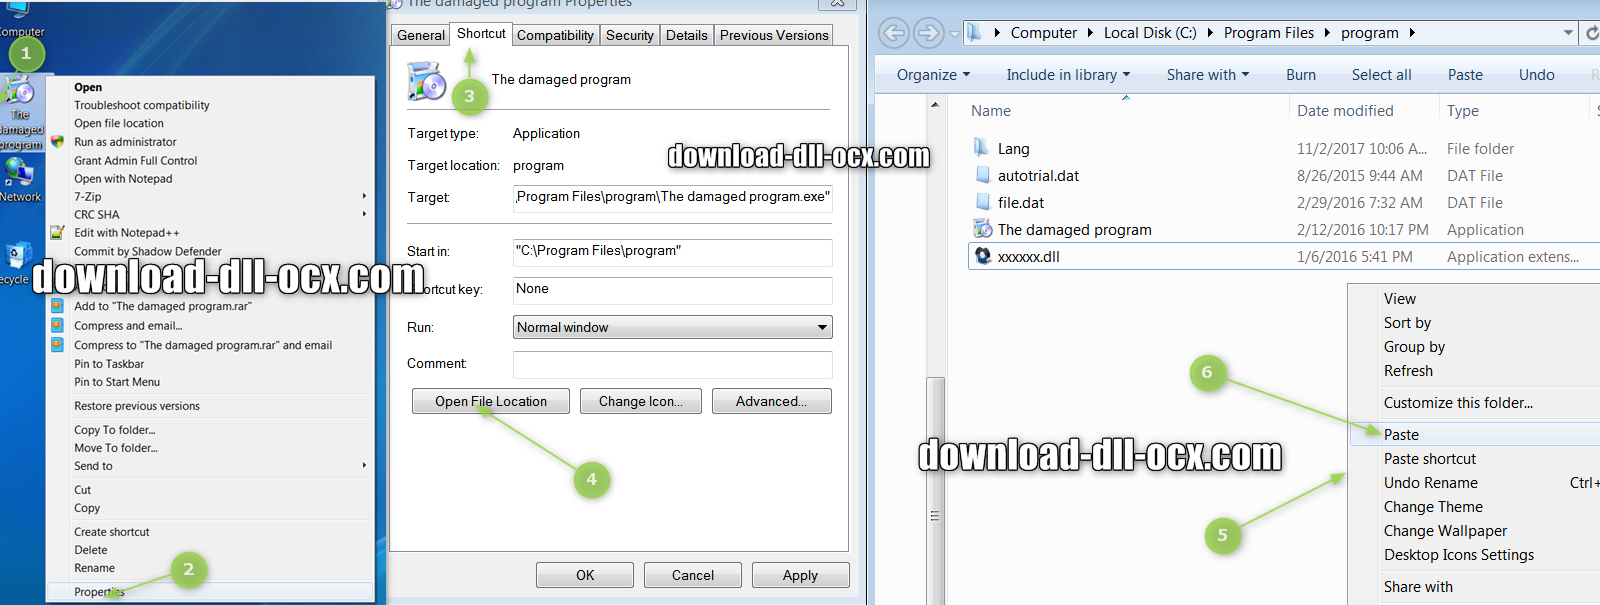 how to install oleautobridge.uno.dll file? for fix missing